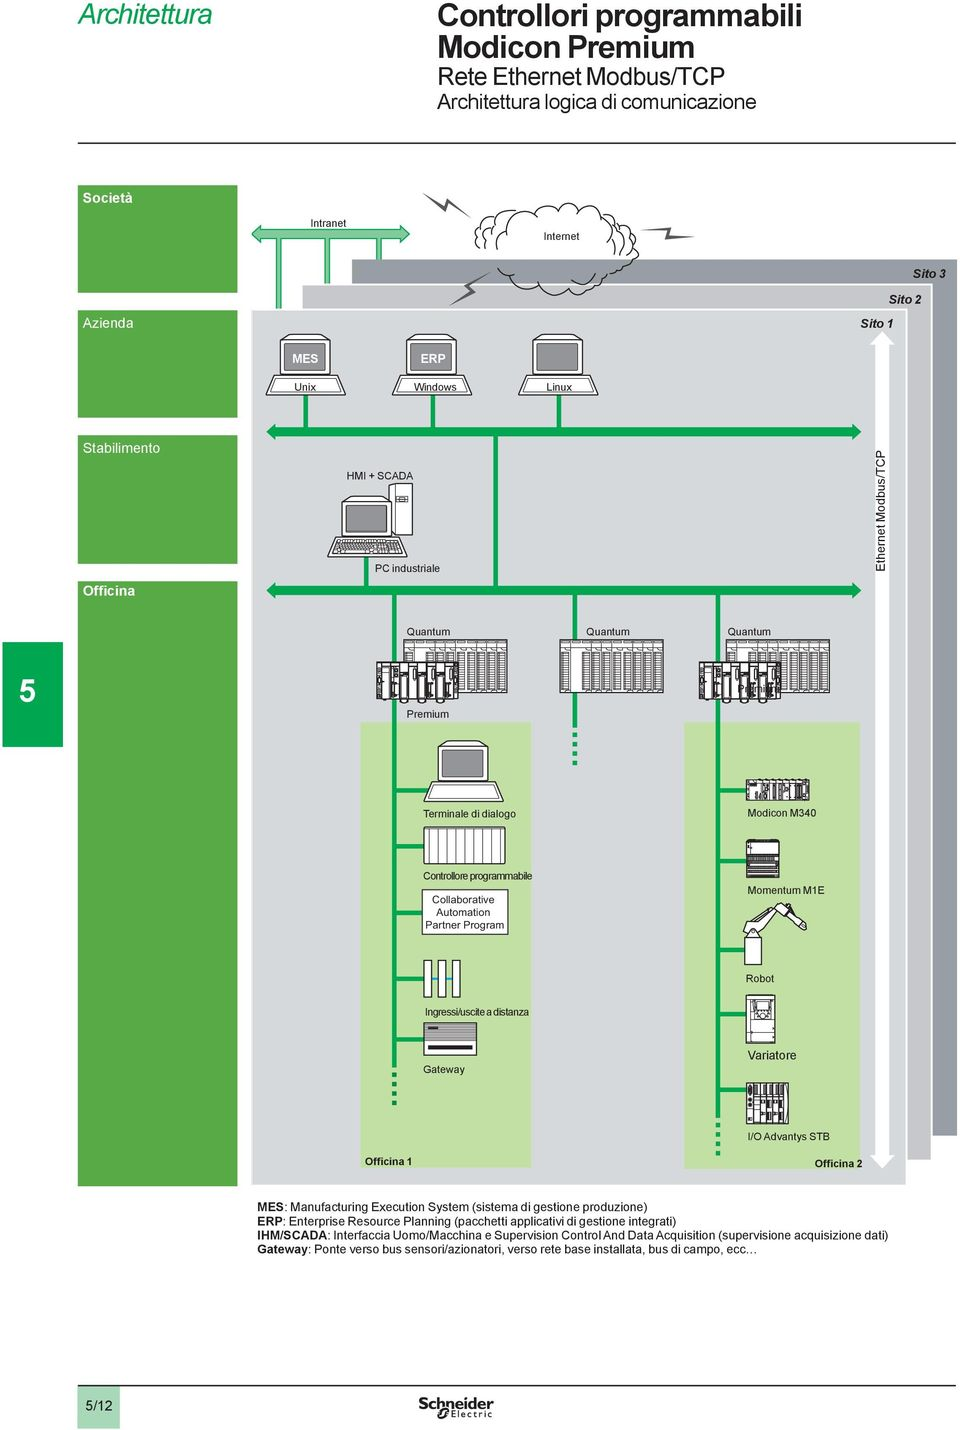 Ingressi/uscite a distanza Gateway Variatore 0 Officina I/O Advantys STB Officina MES: Manufacturing Execution System (sistema di gestione produzione) ERP: Enterprise Resource Planning (pacchetti